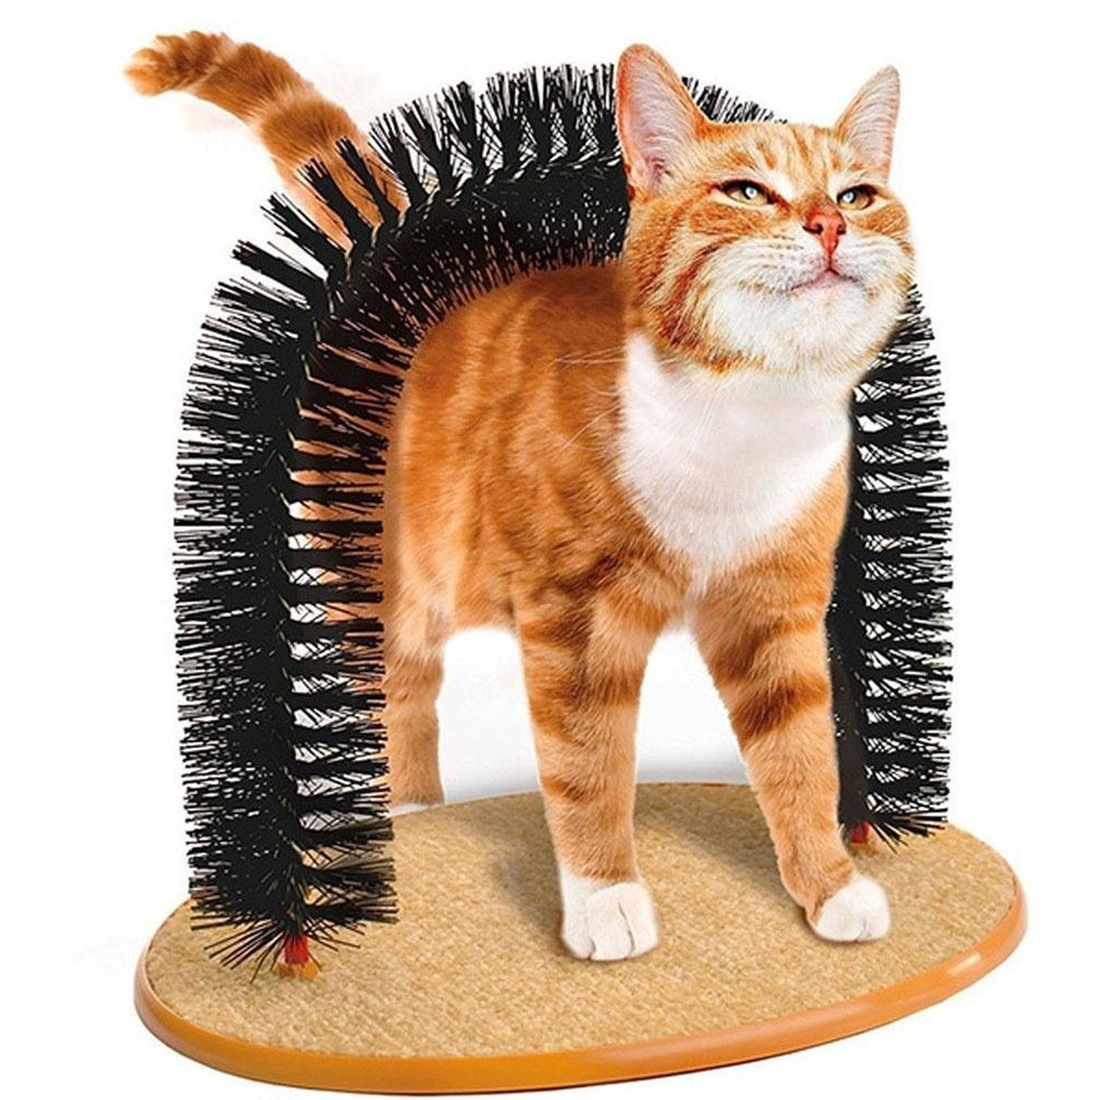 Pet Products Arch Cat Self Groomer With Round Fleece Base dog Toy Brush scratcher For Pets Scratching Devices in Furniture Scratchers from Home Garden